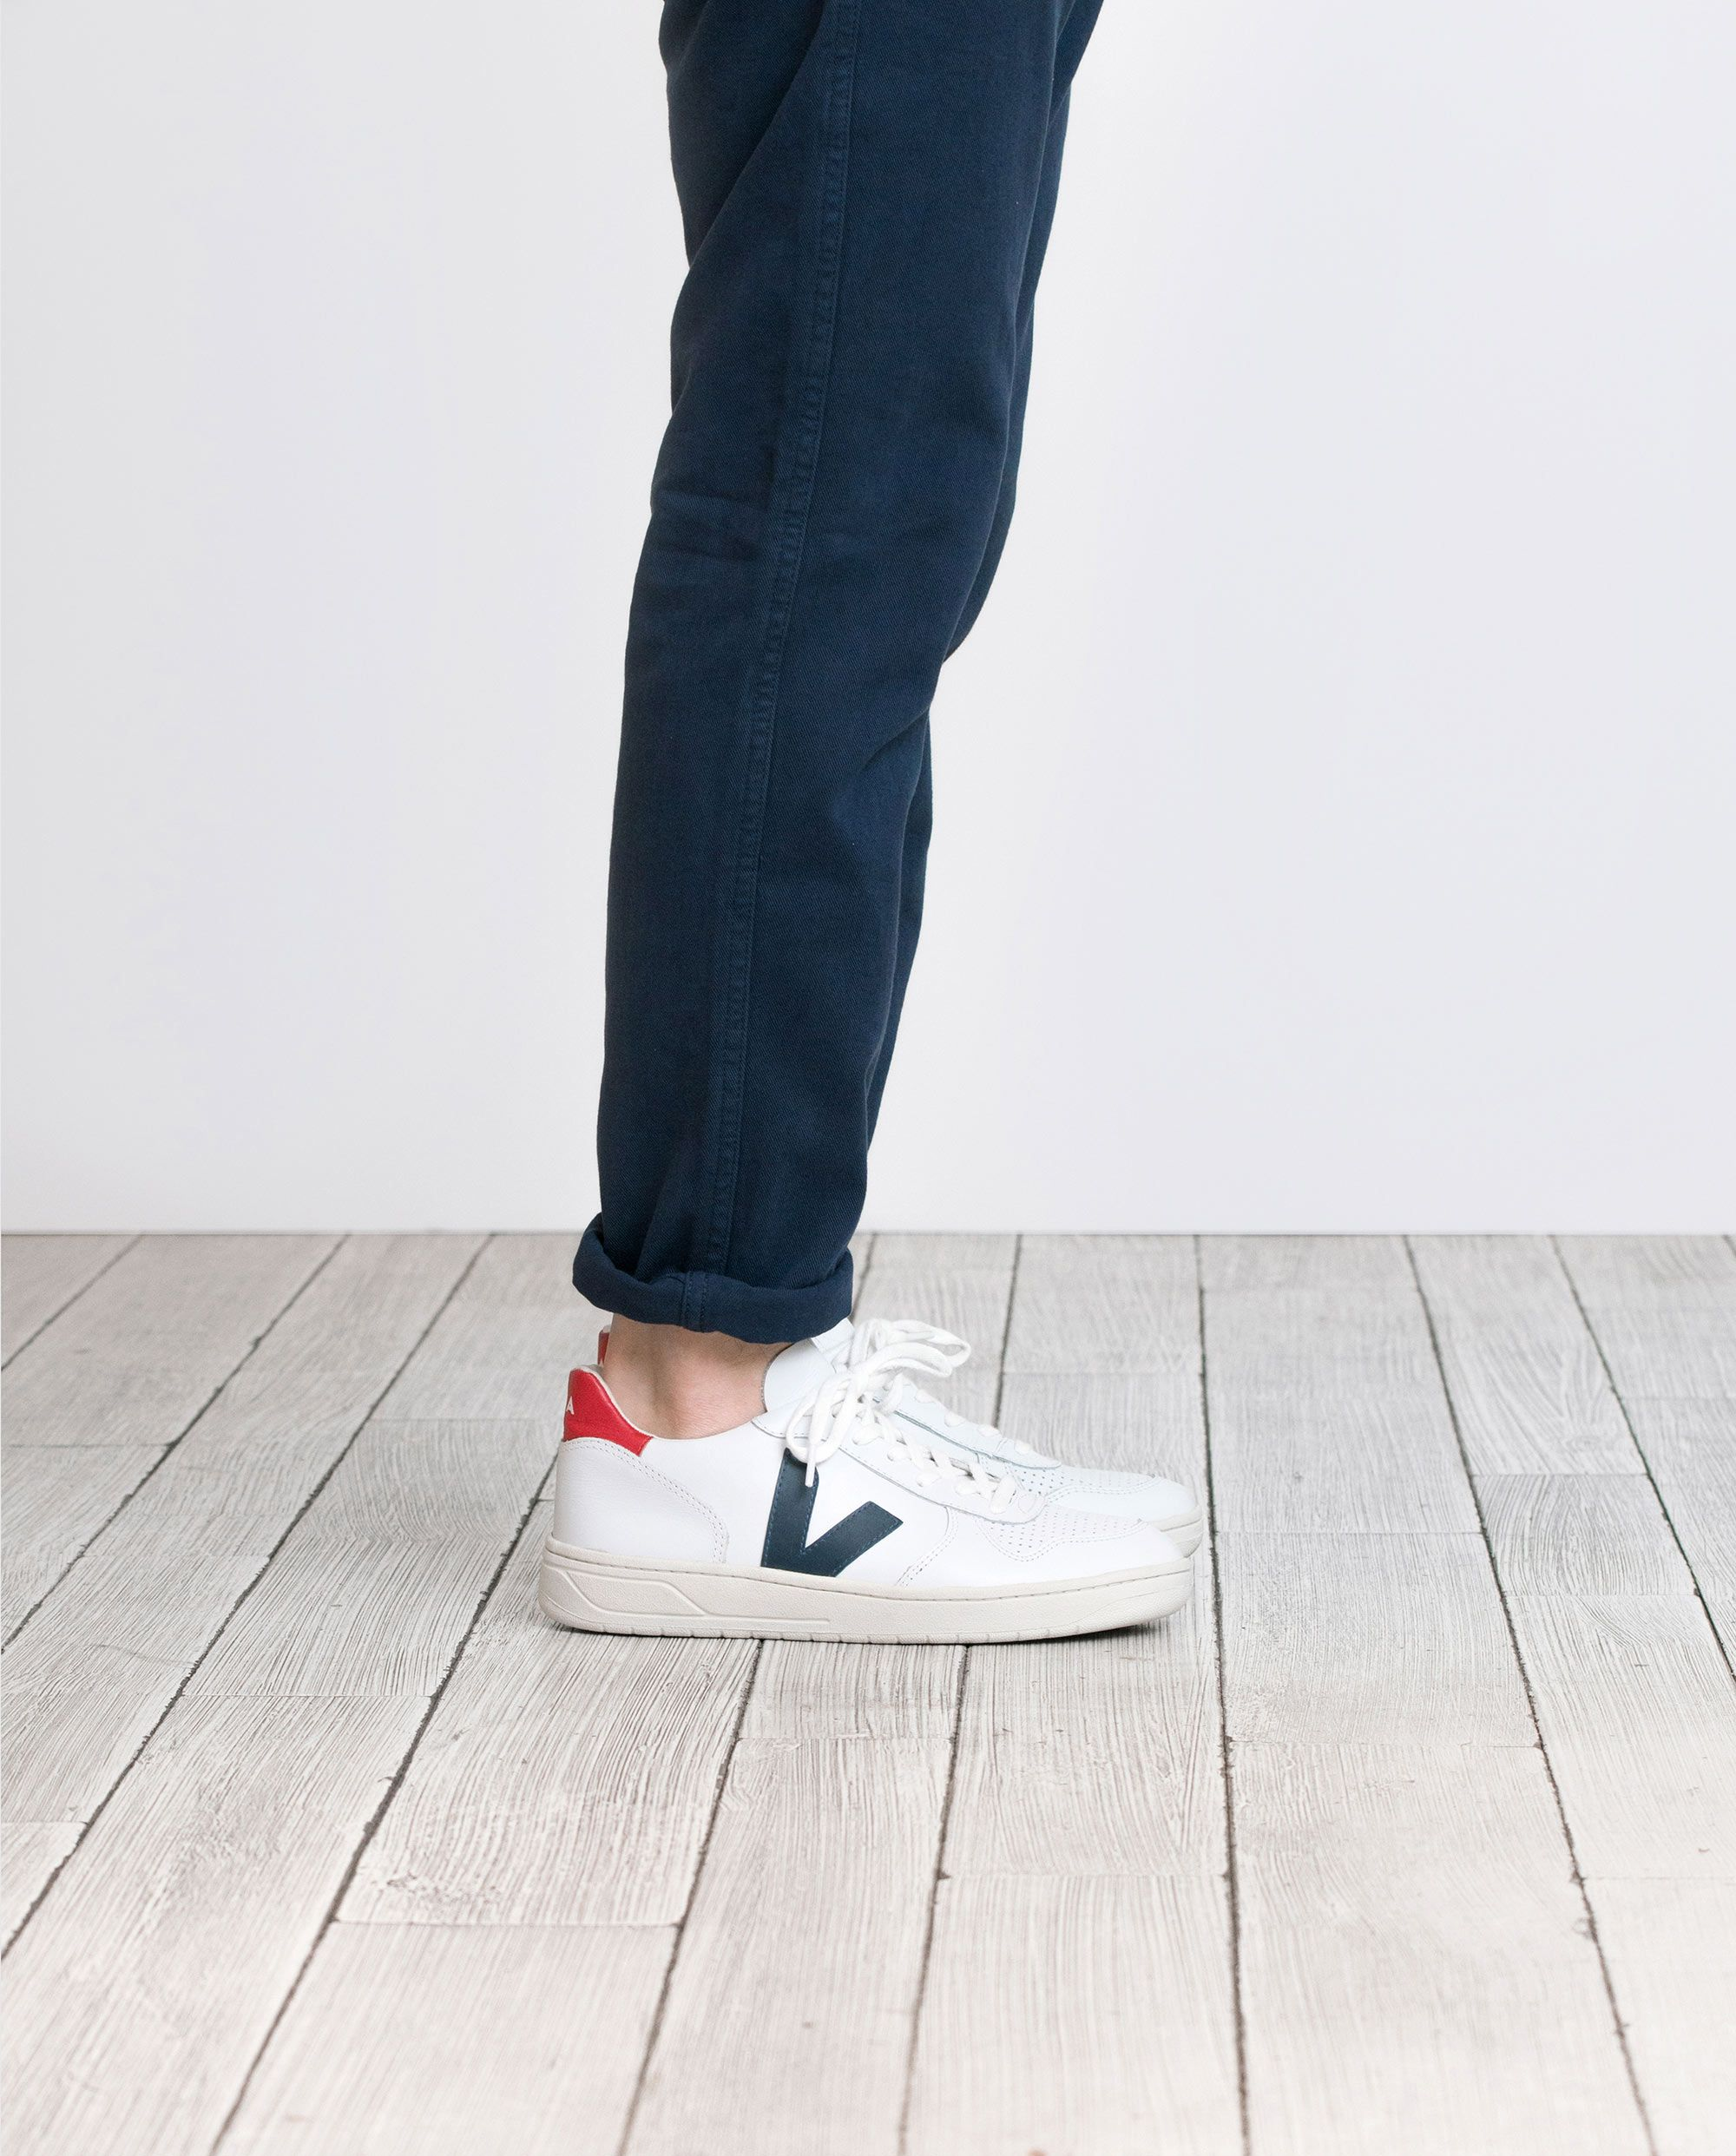 Necesario meditación Avispón  V-10 EXTRA WHITE NAUTICO PEKIN: Made out of leather, recycled cotton and  wild rubber from the Amazonian fores… | Sneakers outfit men, White shoes  outfit, Veja shoes